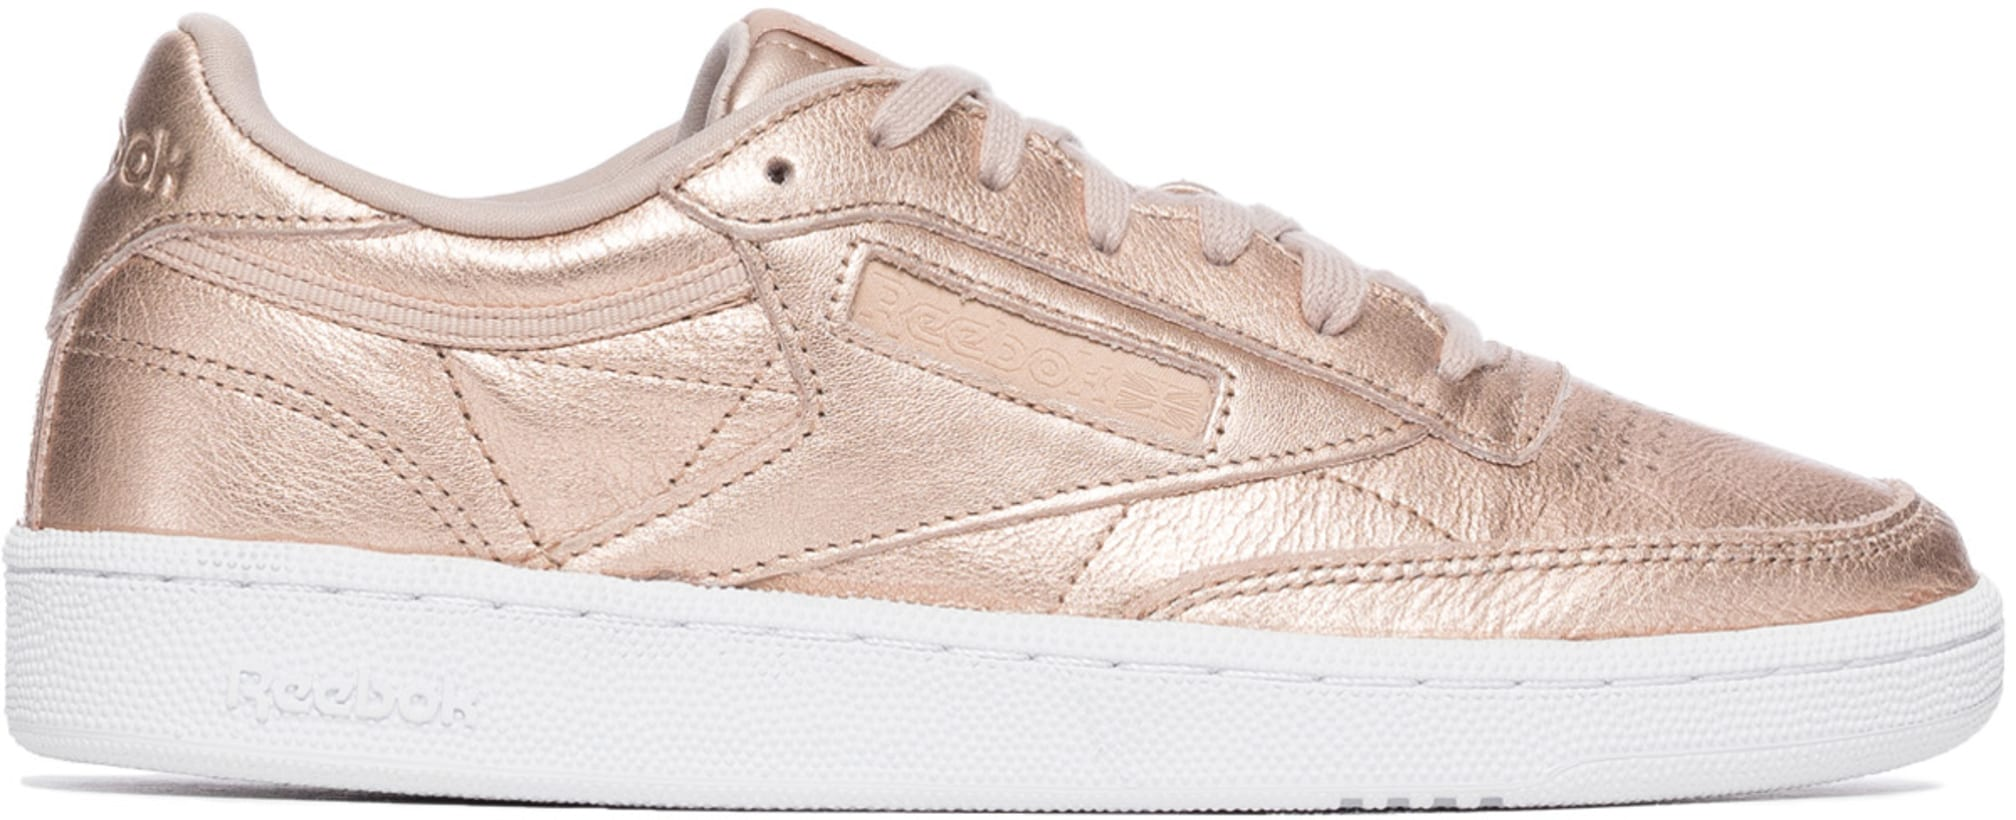 f86232a9c94 Reebok  Club C 85 Melted Metals - Gold Pearl Metallic Peach White ...